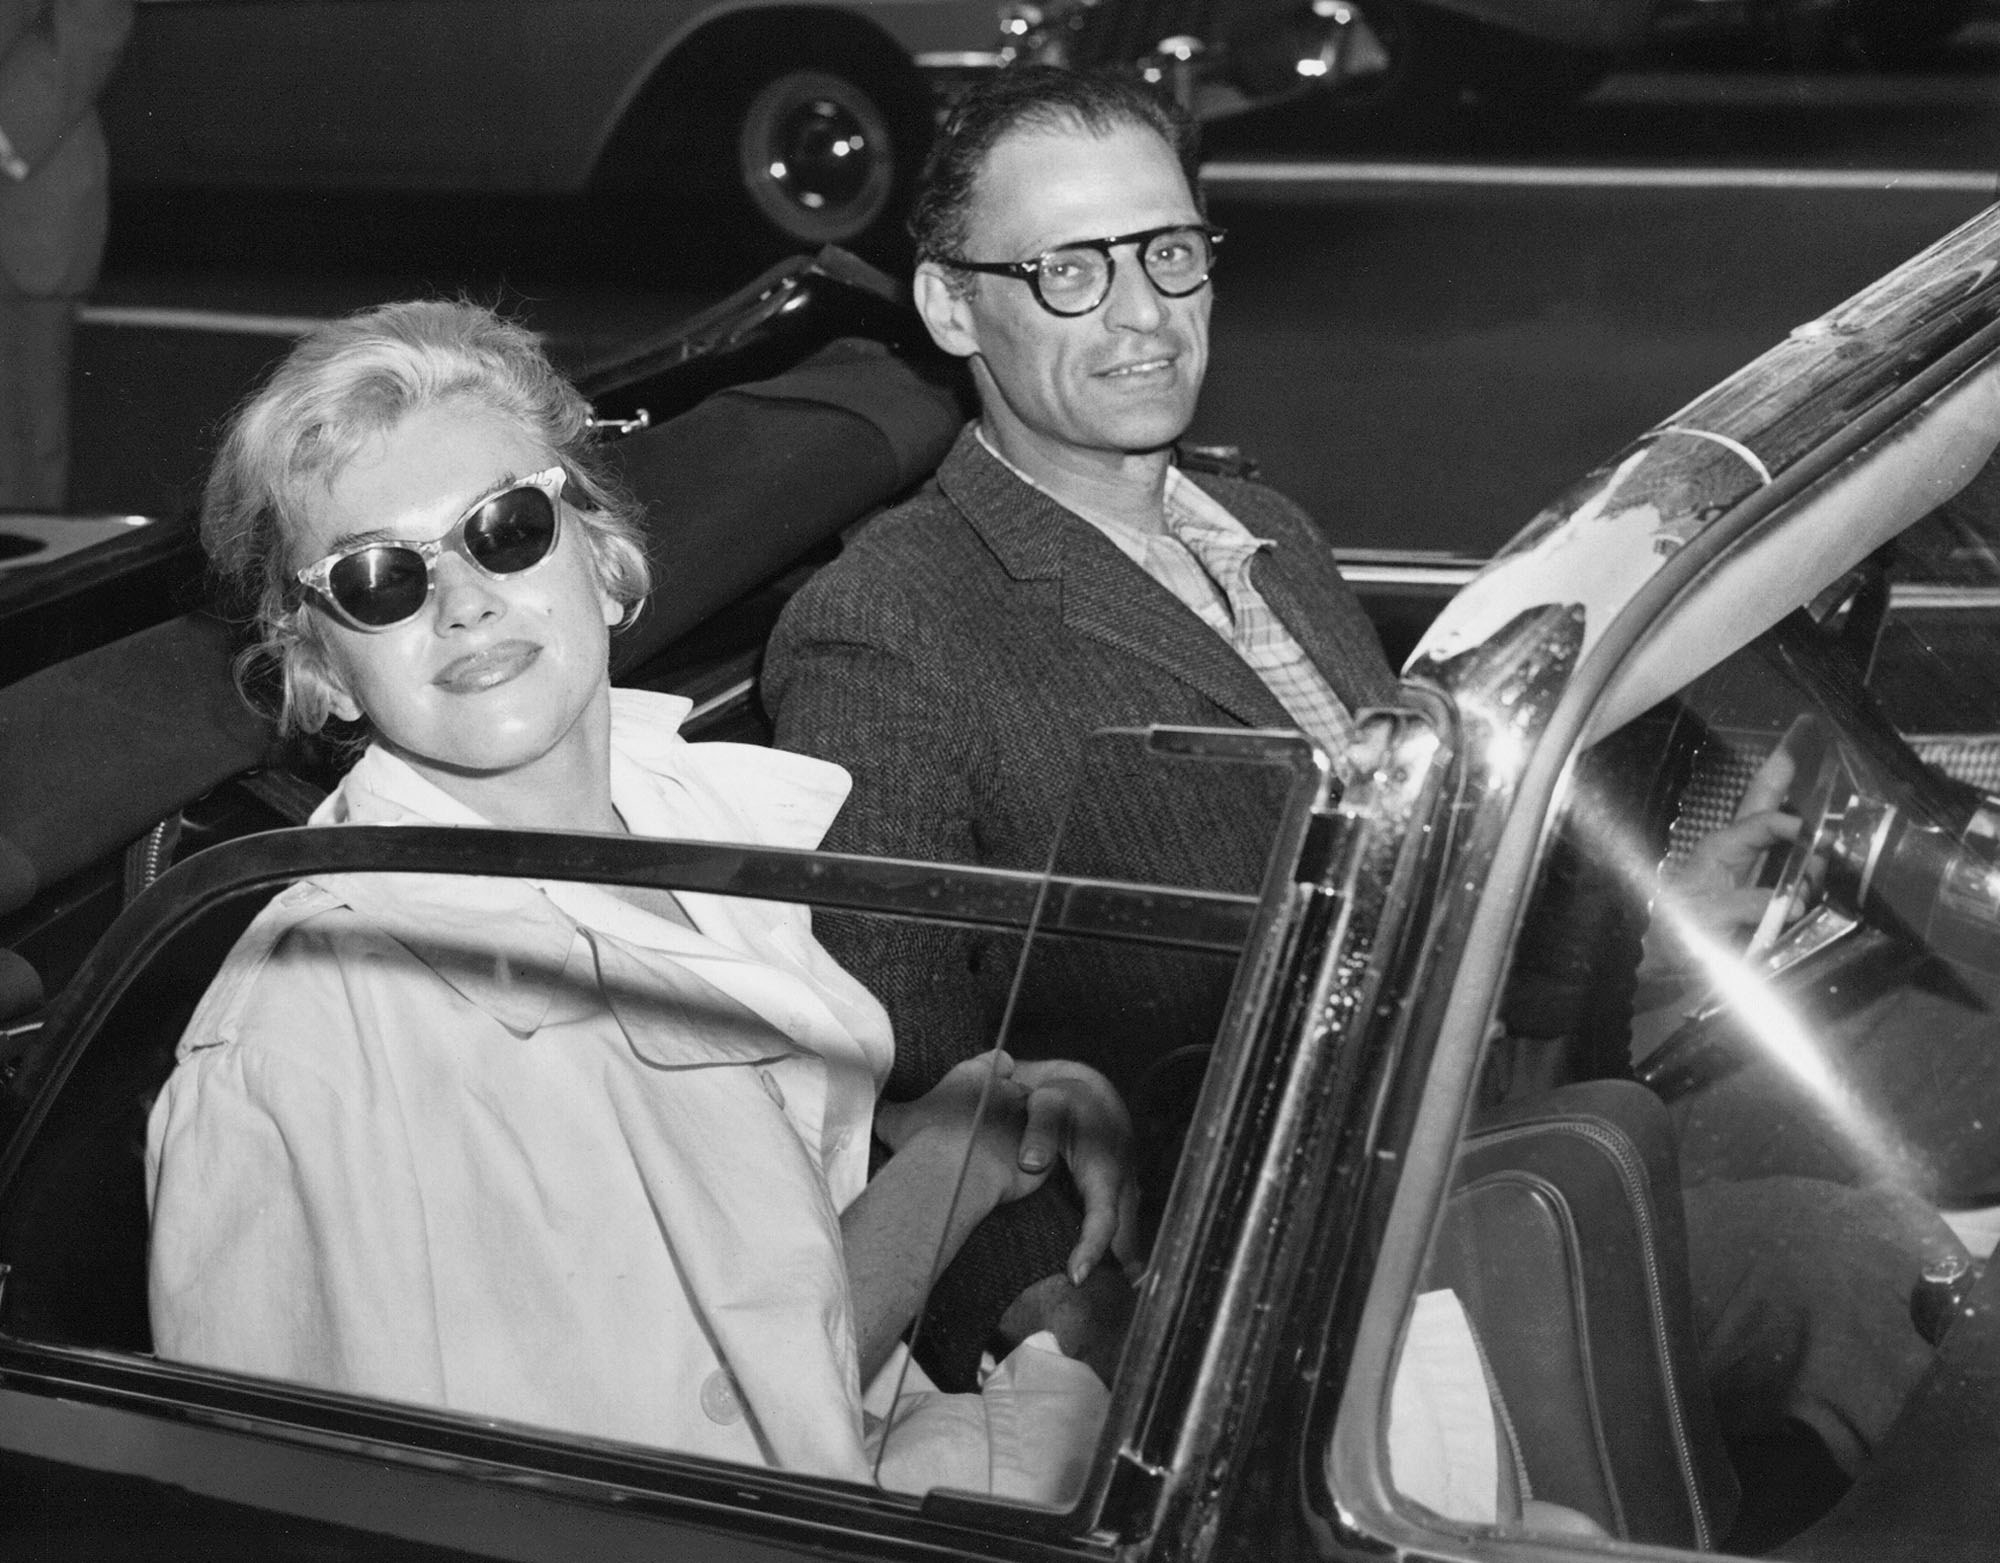 Marilyn Monroe, wearing sunglasses, smiles at the camera from the passenger seat of a convertible